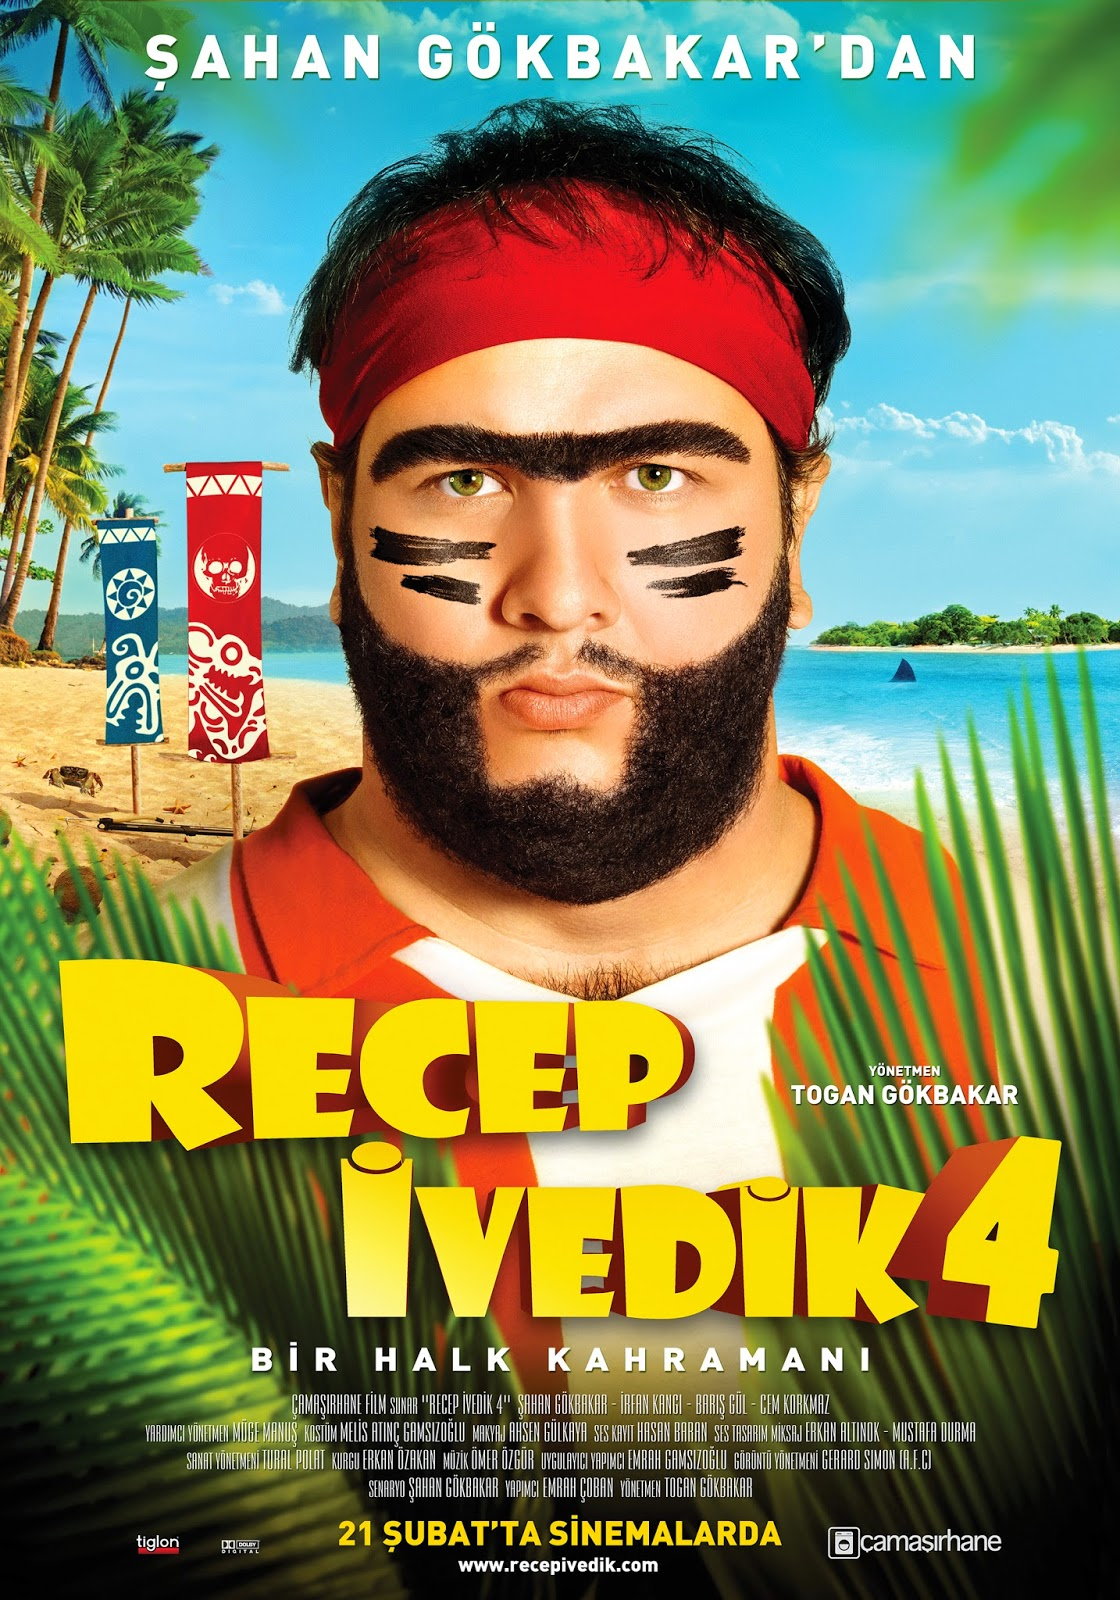 Recep Ivedik 4 (2014) ταινιες online seires oipeirates greek subs